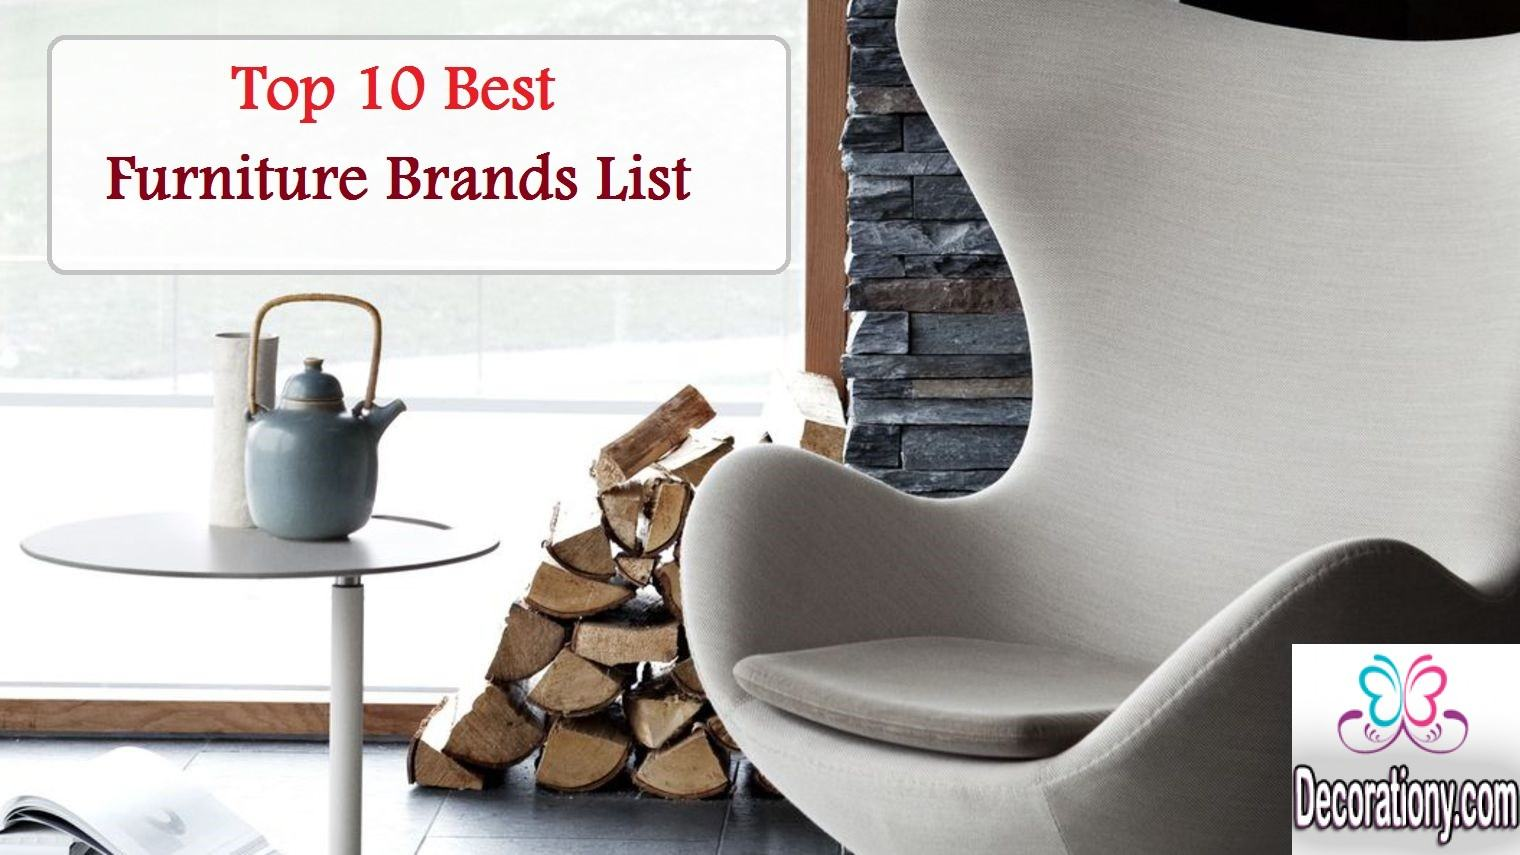 best furniture brands list 2016/2017